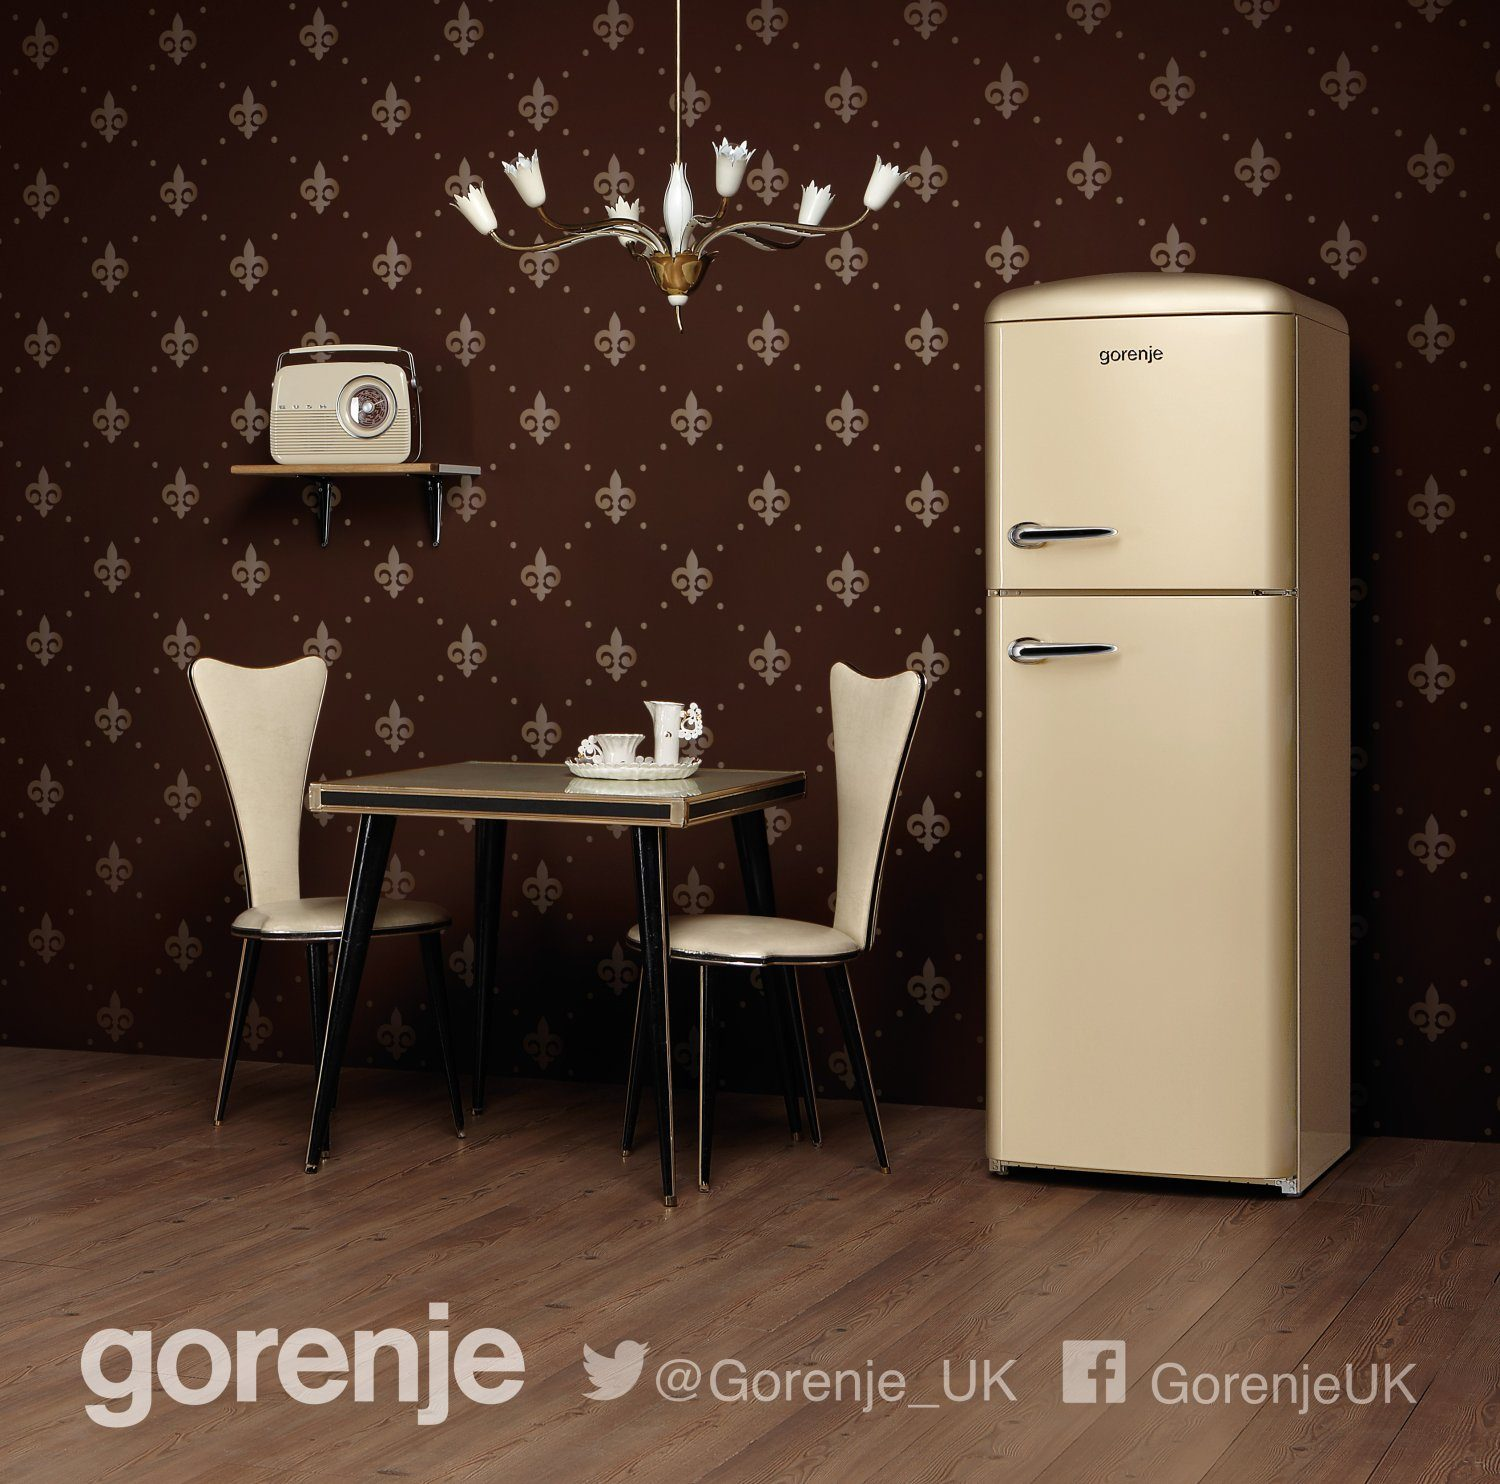 reliability takes centre stage at gorenje gorenje. Black Bedroom Furniture Sets. Home Design Ideas